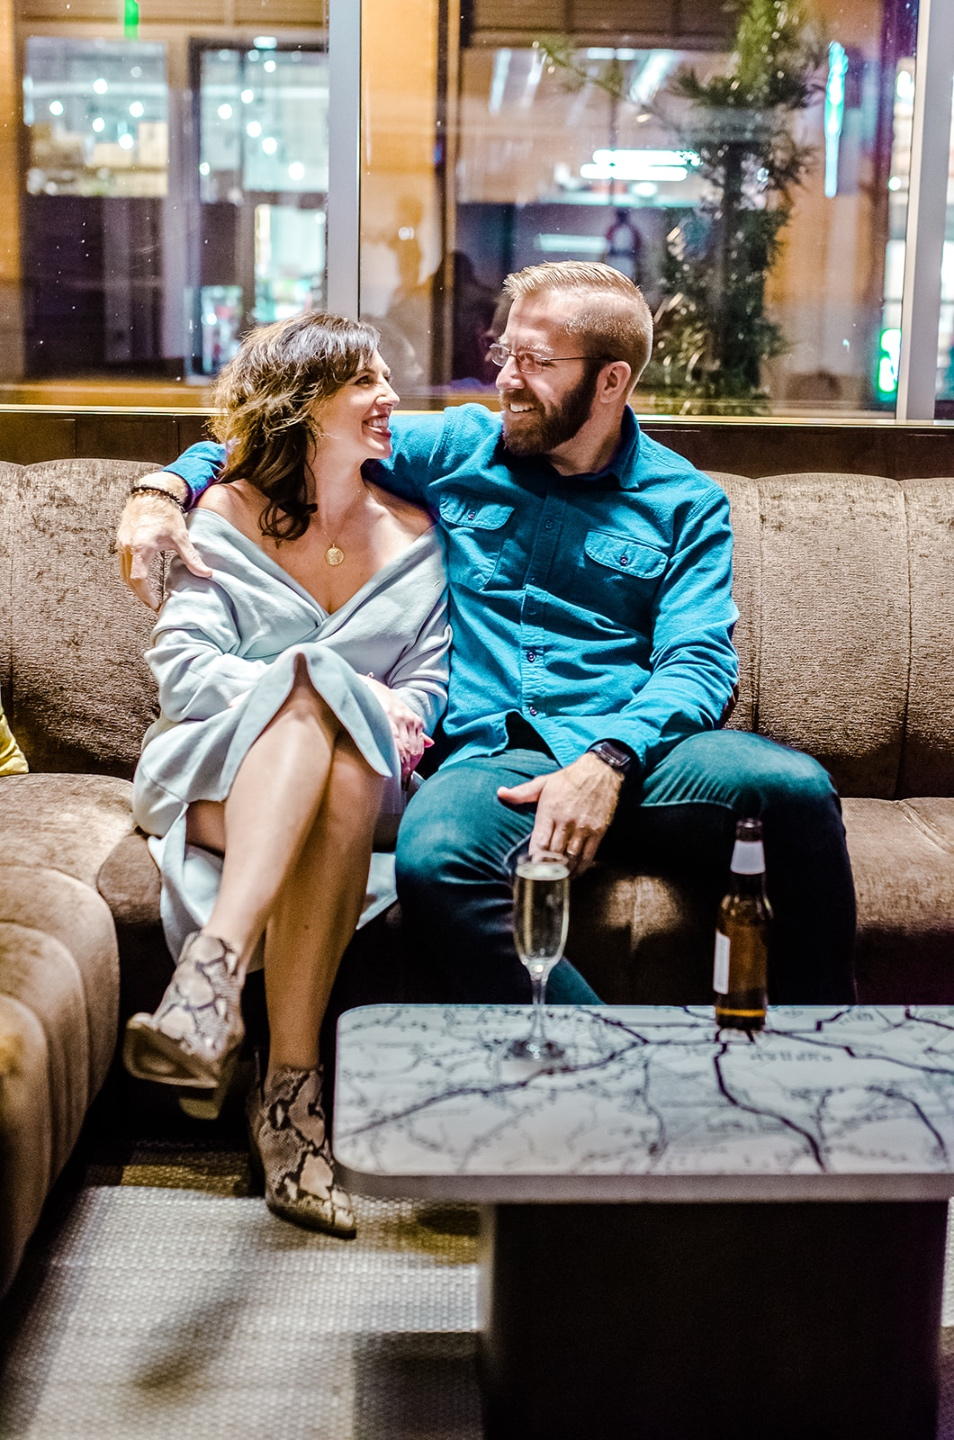 5 Lovely Valentine Date Night Ideas When Social Distancing - I'm Fixin' To - @imfixintoblog |Valentine's Date Night Ideas by popular NC lifestyle blog, I'm Fixin' To: image of a husband and wife sitting together on brown sectional couch.